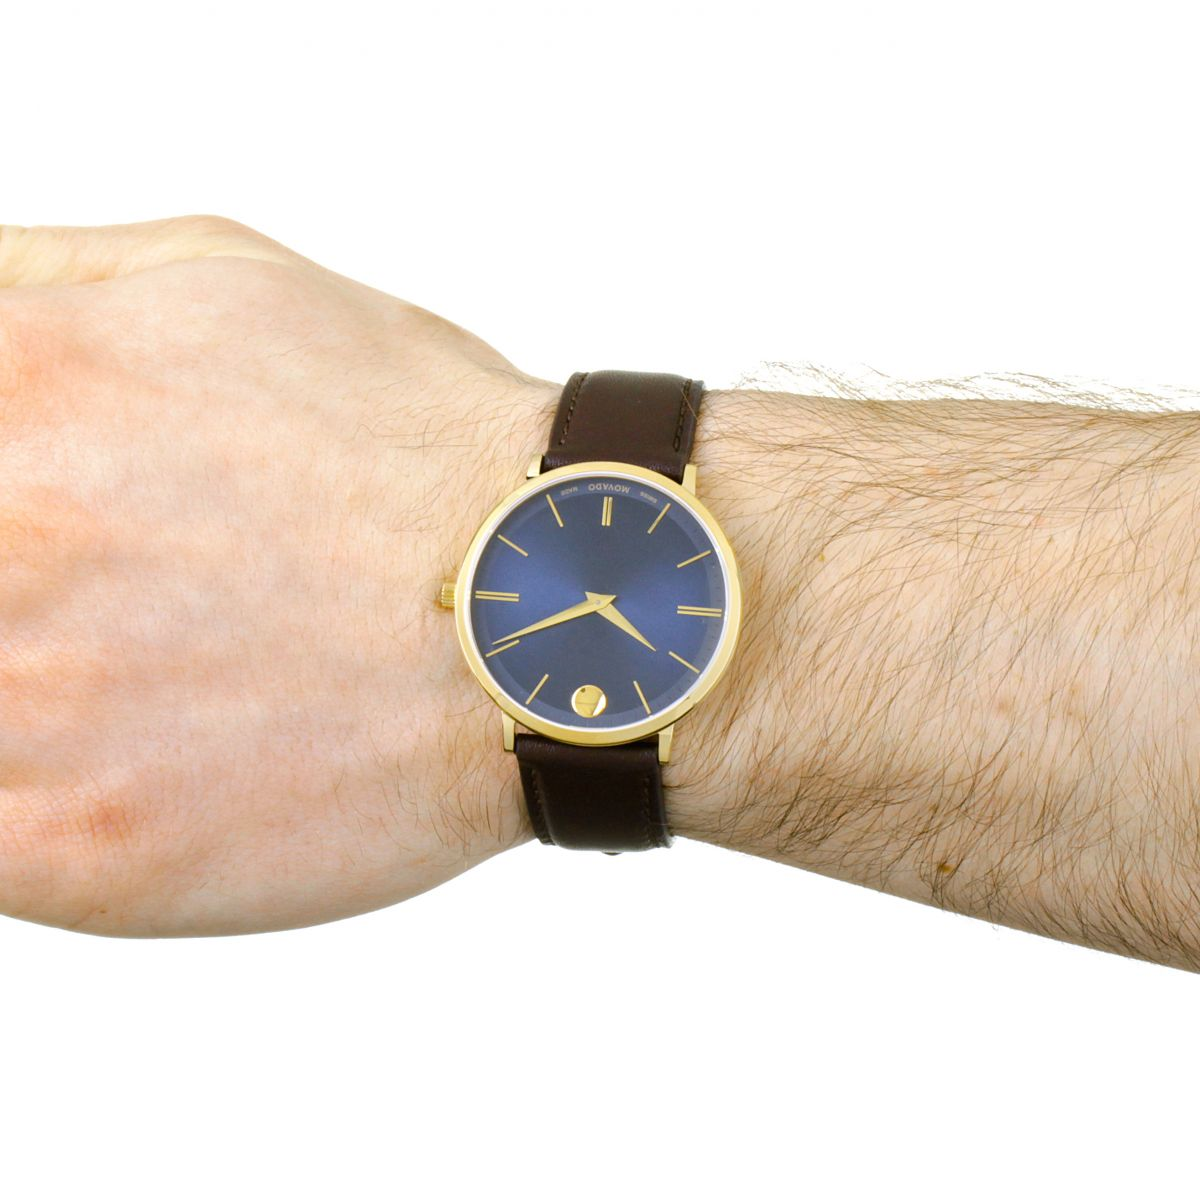 Blue Dial Luxury Watches You'll Love